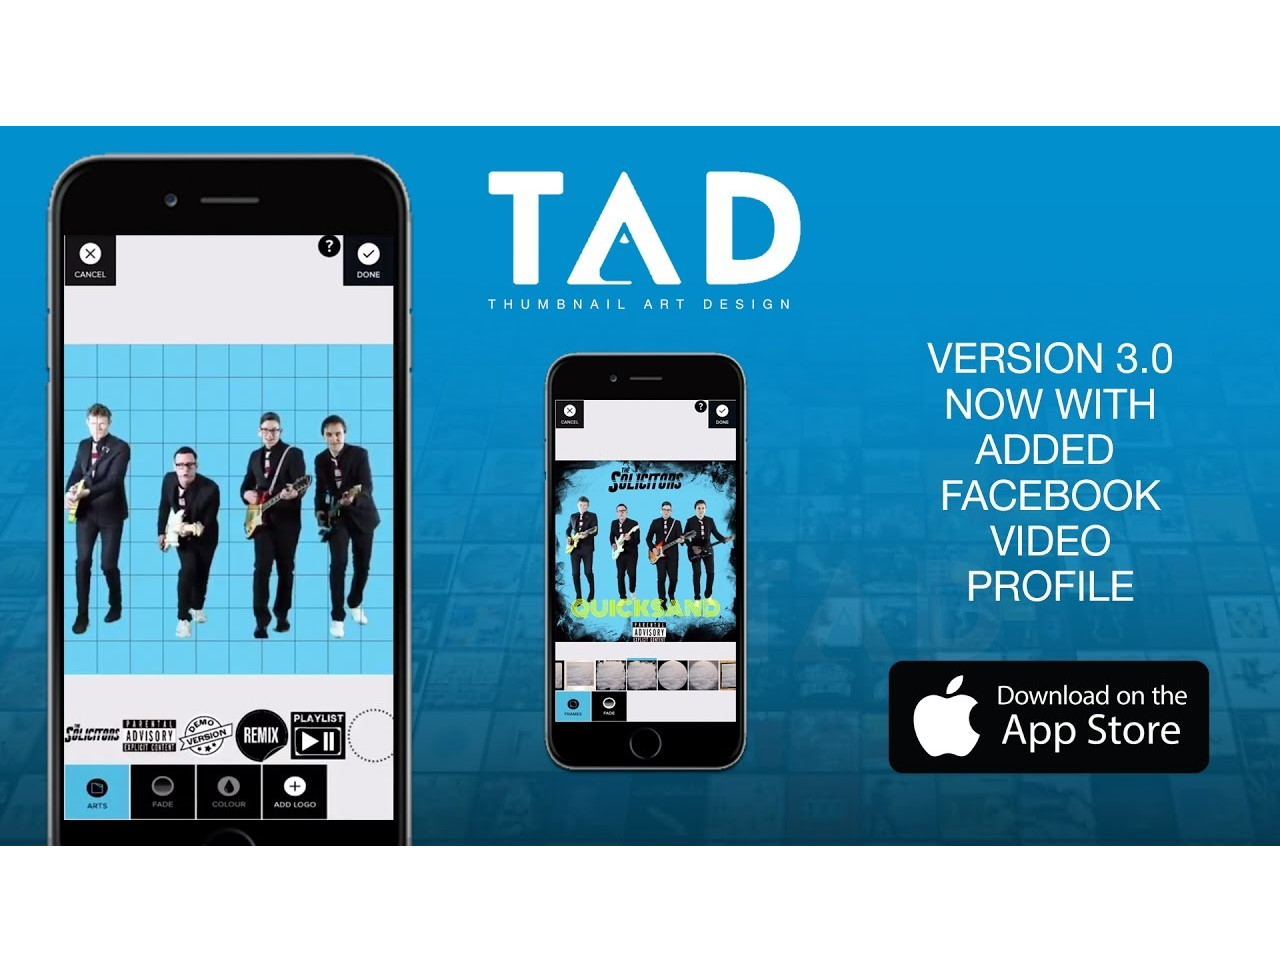 TAD Thumbnail Art Design iOS App